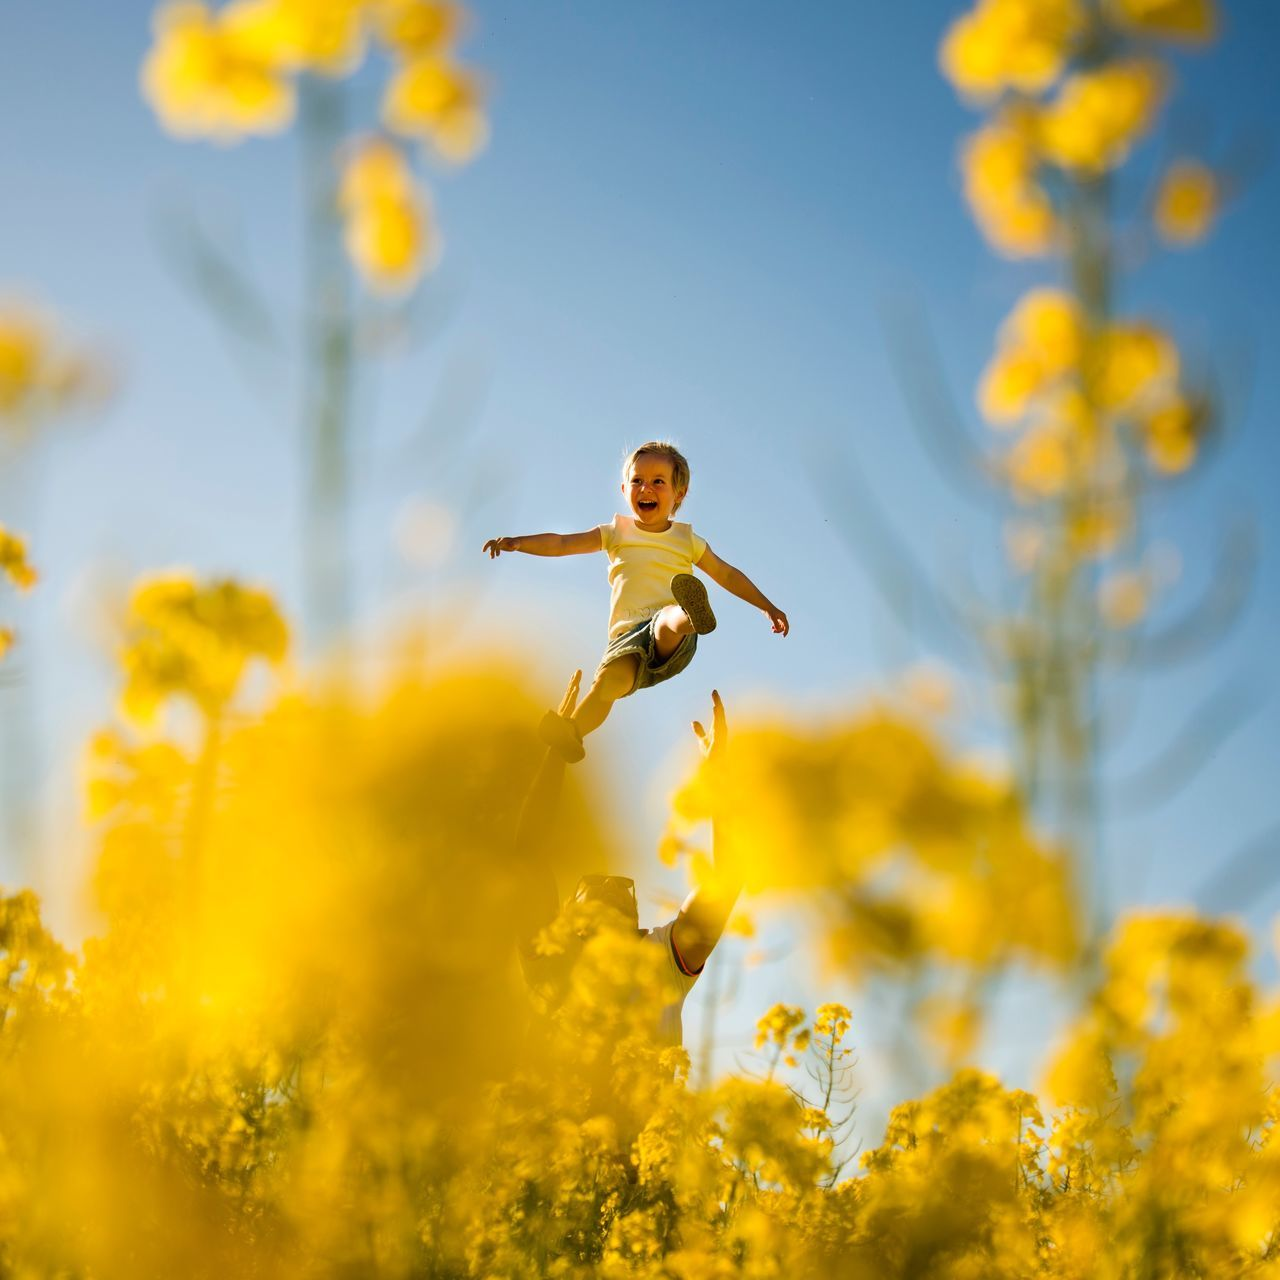 Low angle view of father holding son amidst yellow flowering plant against sky